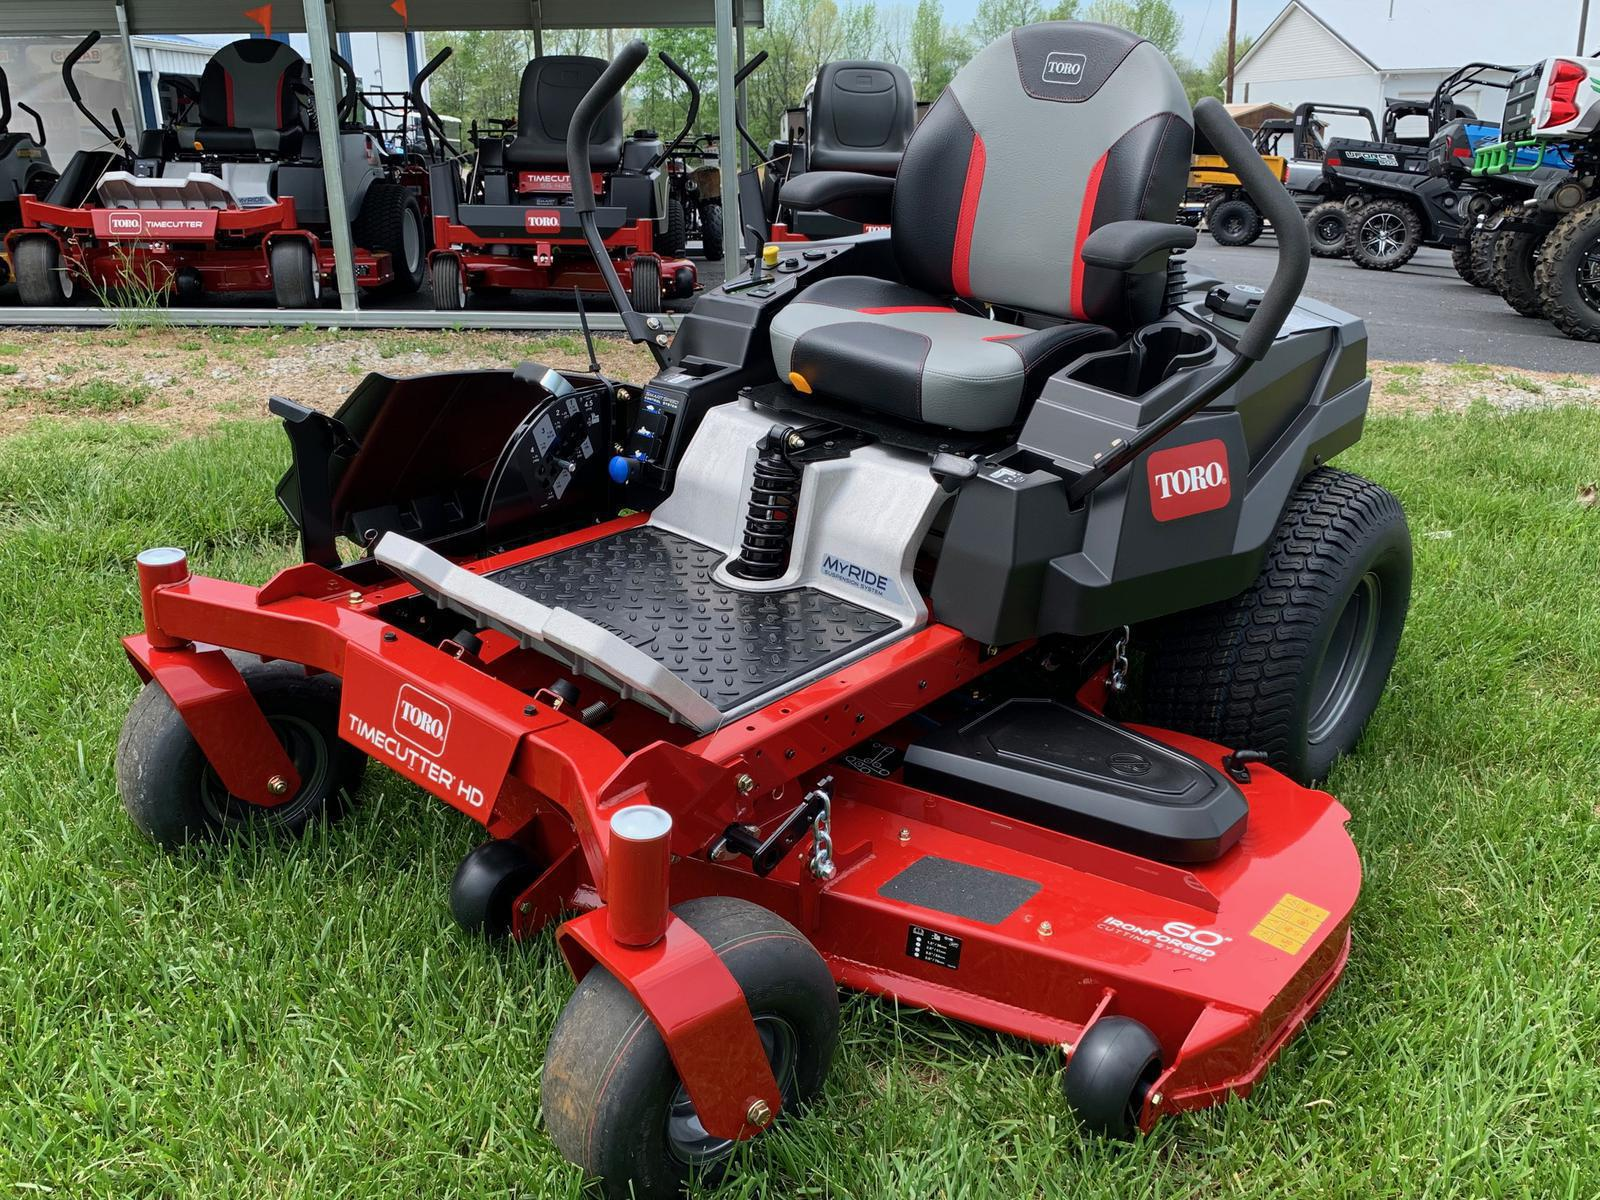 Inventory from Crossroads and Toro Country Roads Powersports